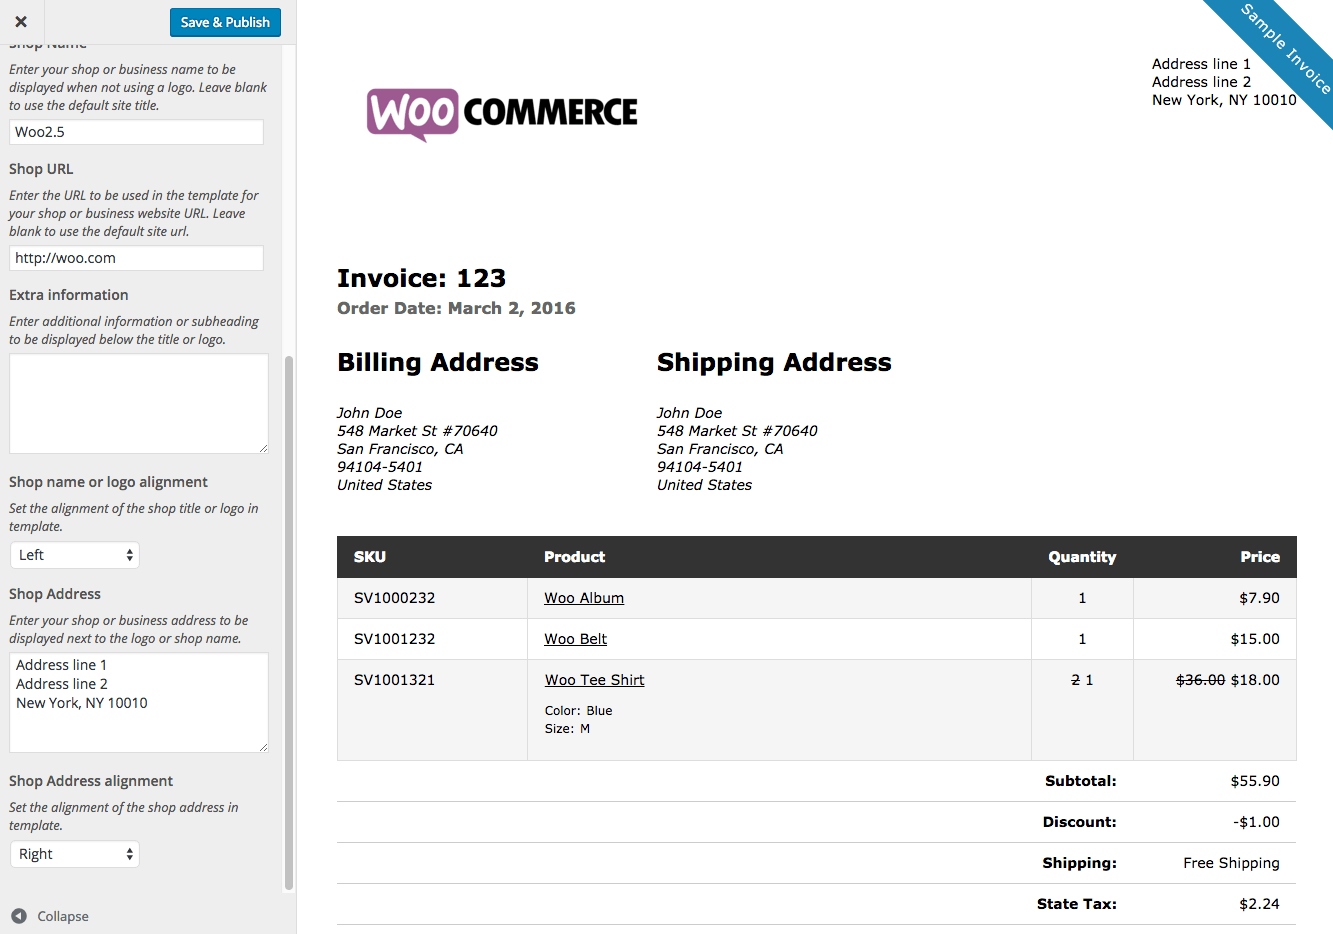 Ultrablogus  Winning Woocommerce Print Invoices Amp Packing Lists  Woocommerce Docs With Fair Woocommerce Print Invoices  Packing Lists Customizer With Beautiful Invoice Processing Procedure Also Invoice Discounting Advantages And Disadvantages In Addition Google Invoice Template Free And Free Accounting And Invoicing Software As Well As Cheap Invoice Books Additionally Different Types Of Invoices From Docswoocommercecom With Ultrablogus  Fair Woocommerce Print Invoices Amp Packing Lists  Woocommerce Docs With Beautiful Woocommerce Print Invoices  Packing Lists Customizer And Winning Invoice Processing Procedure Also Invoice Discounting Advantages And Disadvantages In Addition Google Invoice Template Free From Docswoocommercecom